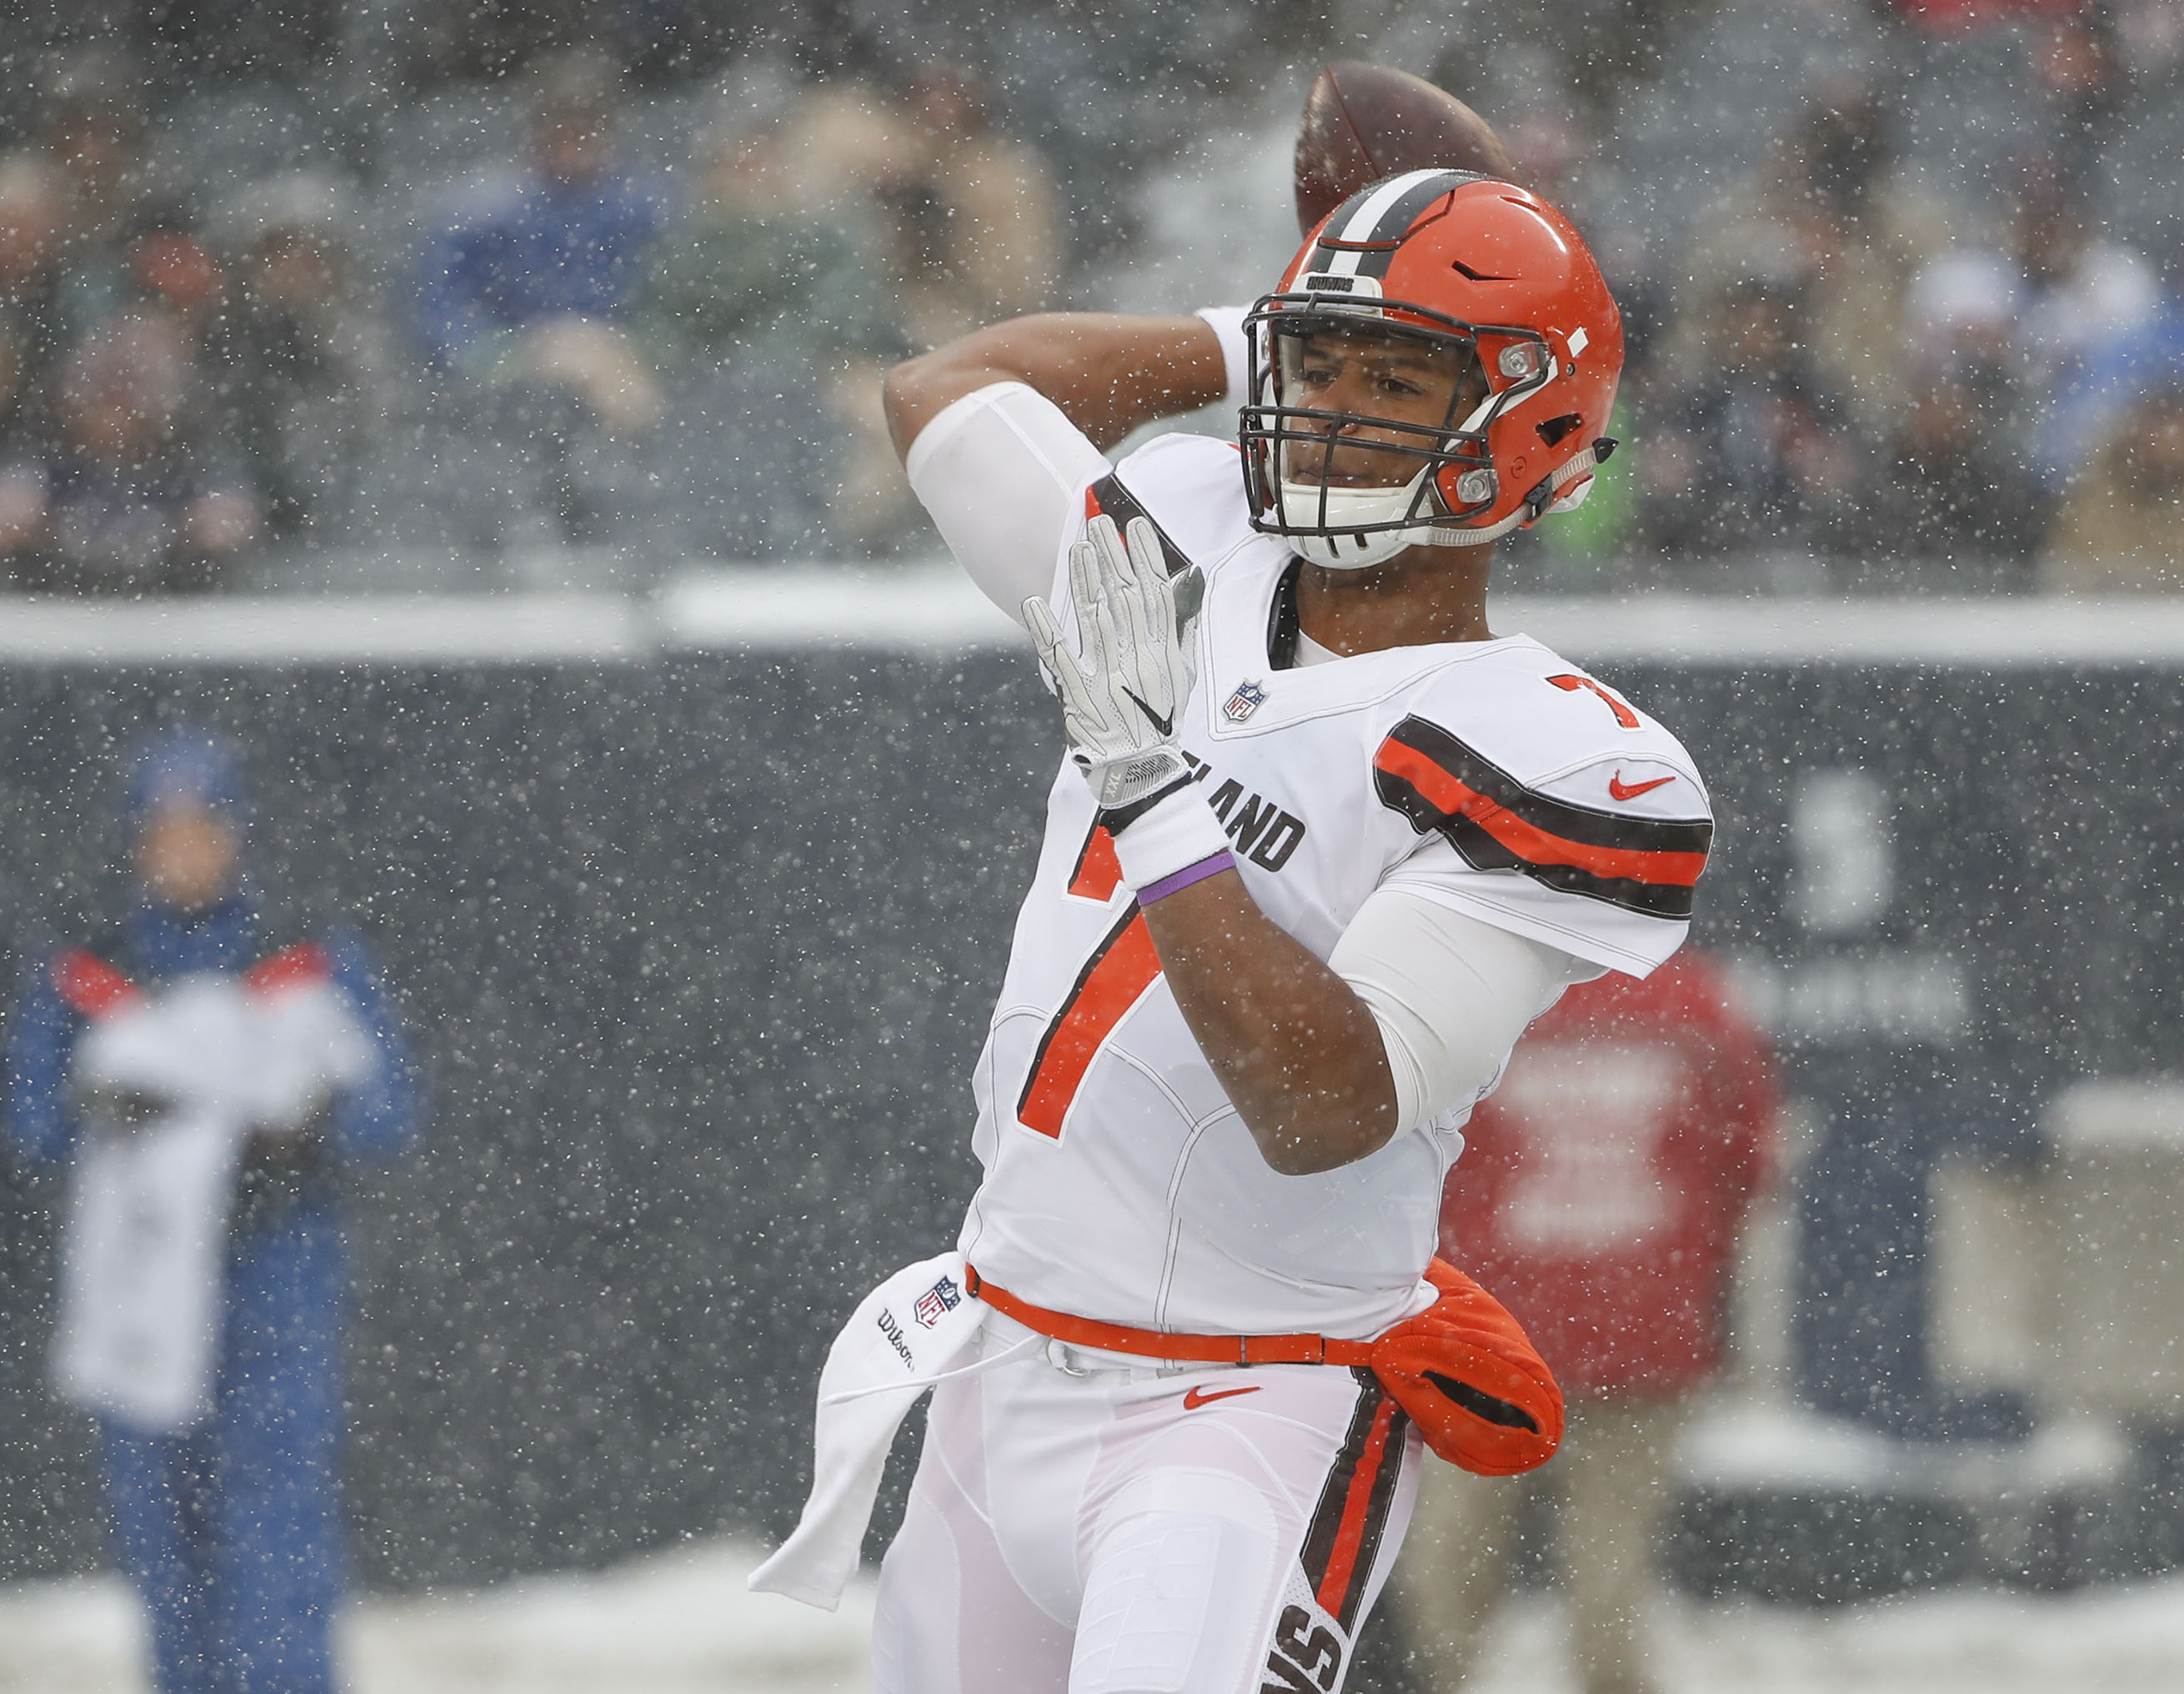 Cleveland Browns season recap: What went right, what went wrong?